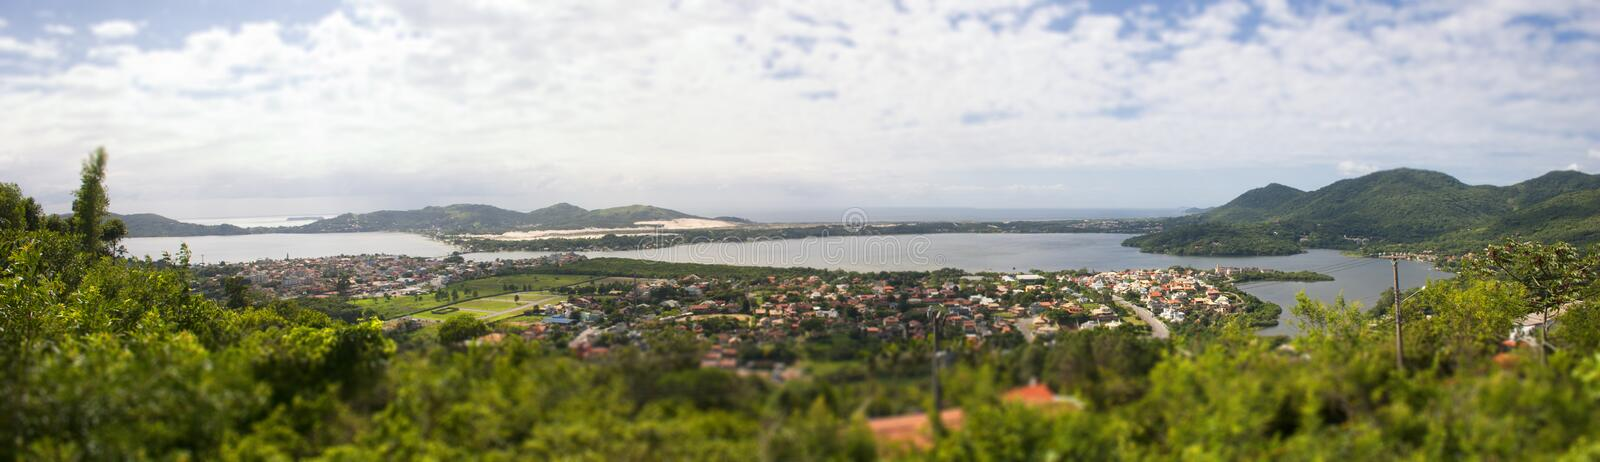 Florianopolis from high angle view royalty free stock photo